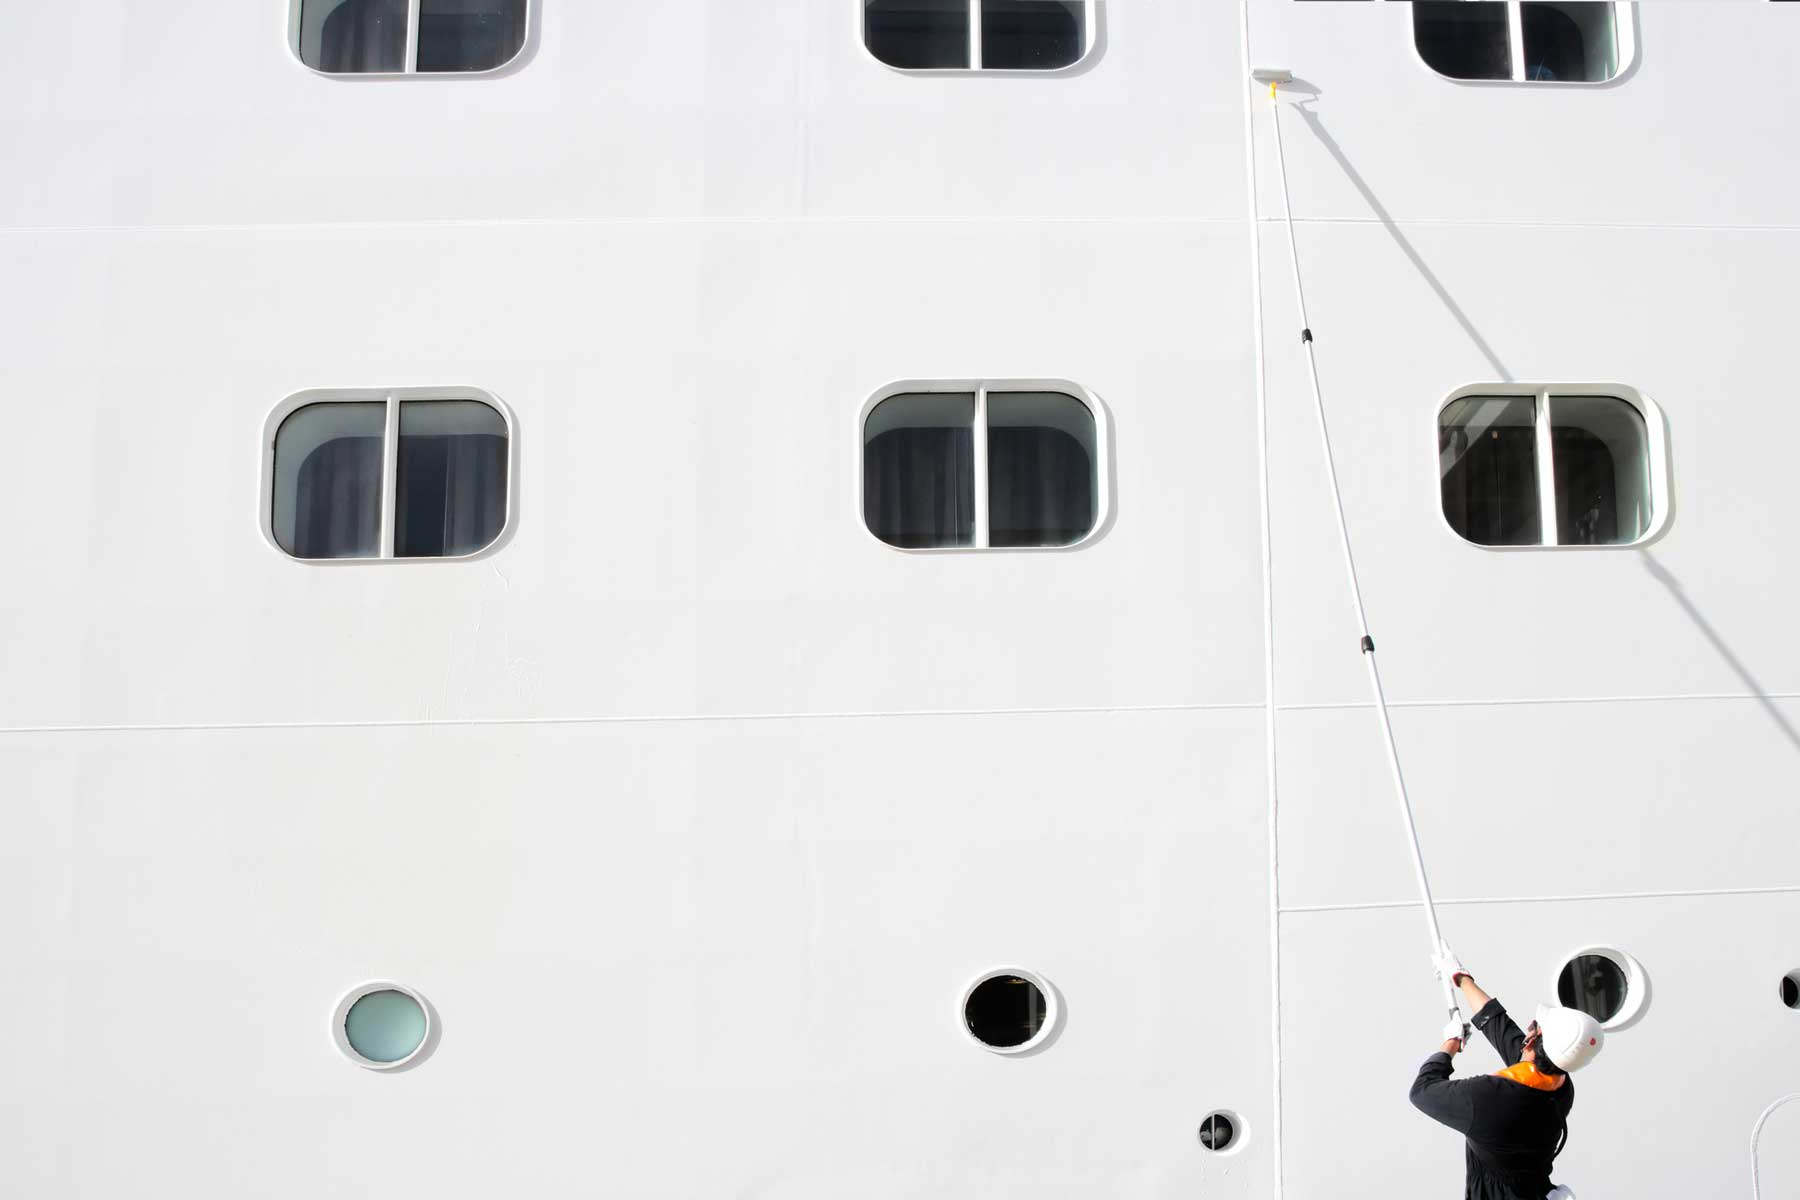 Cleaning the white surface of a cruise ship